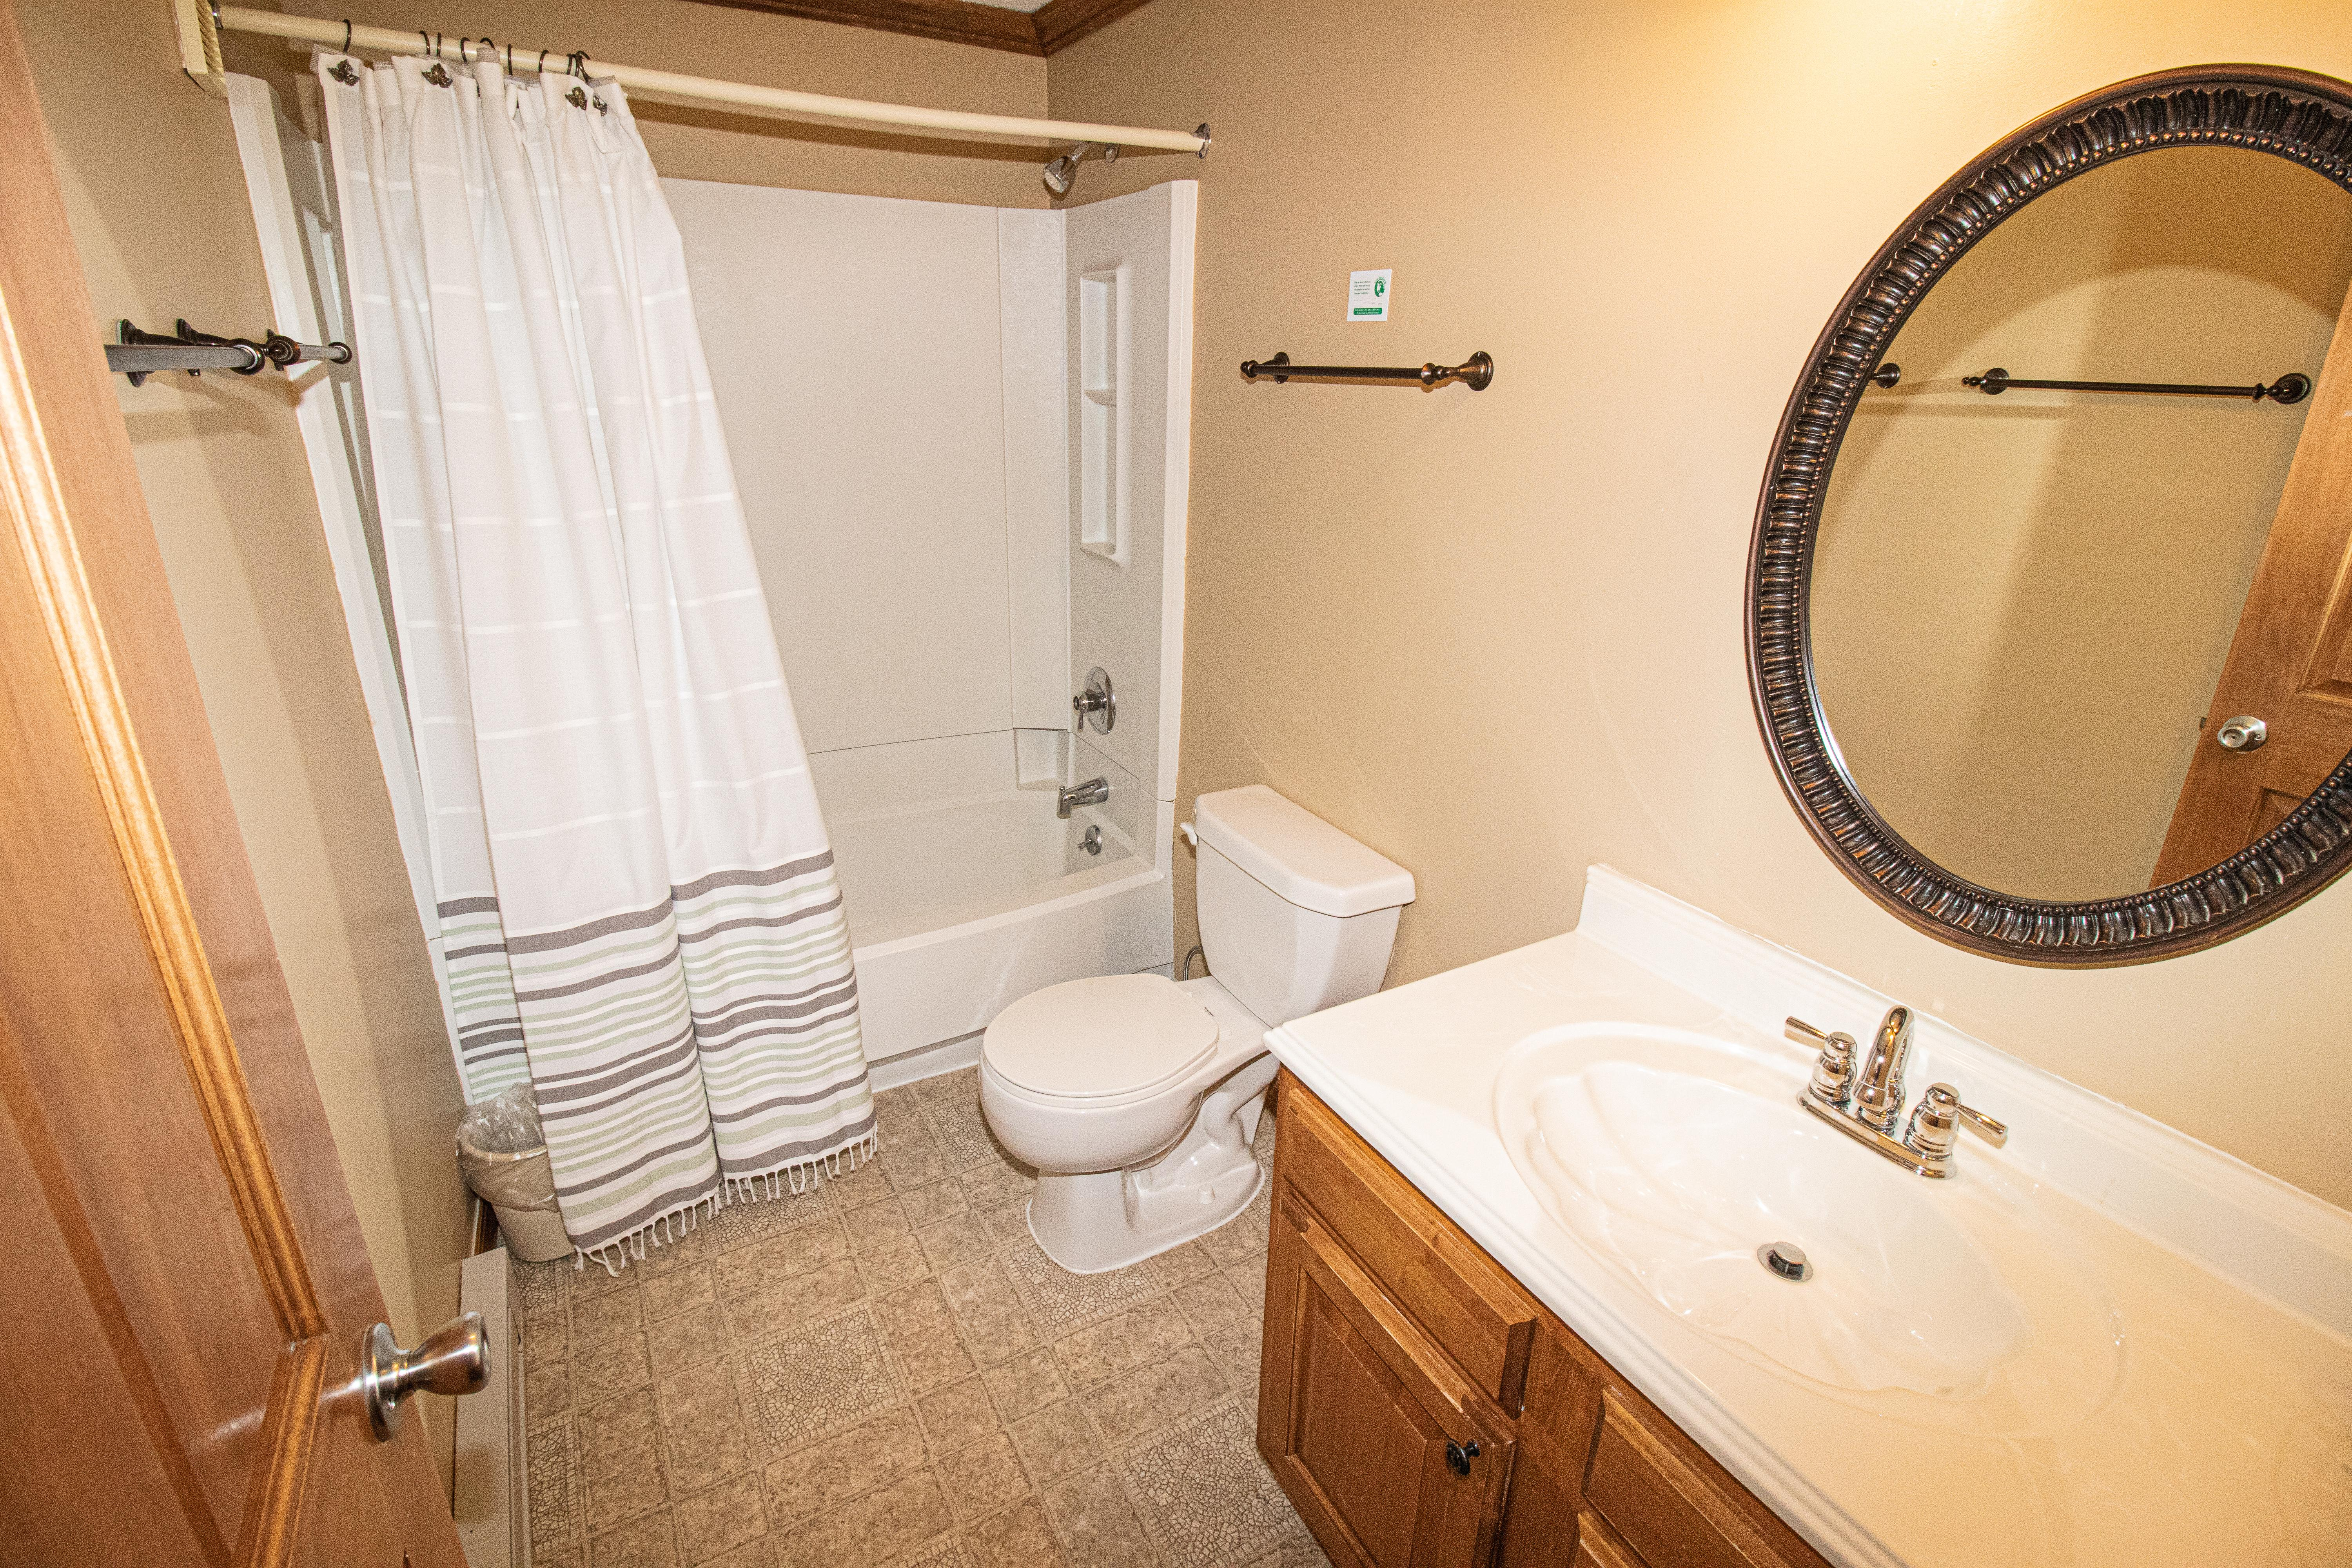 Enlarged bathroom with shower and tub. Towels provided!